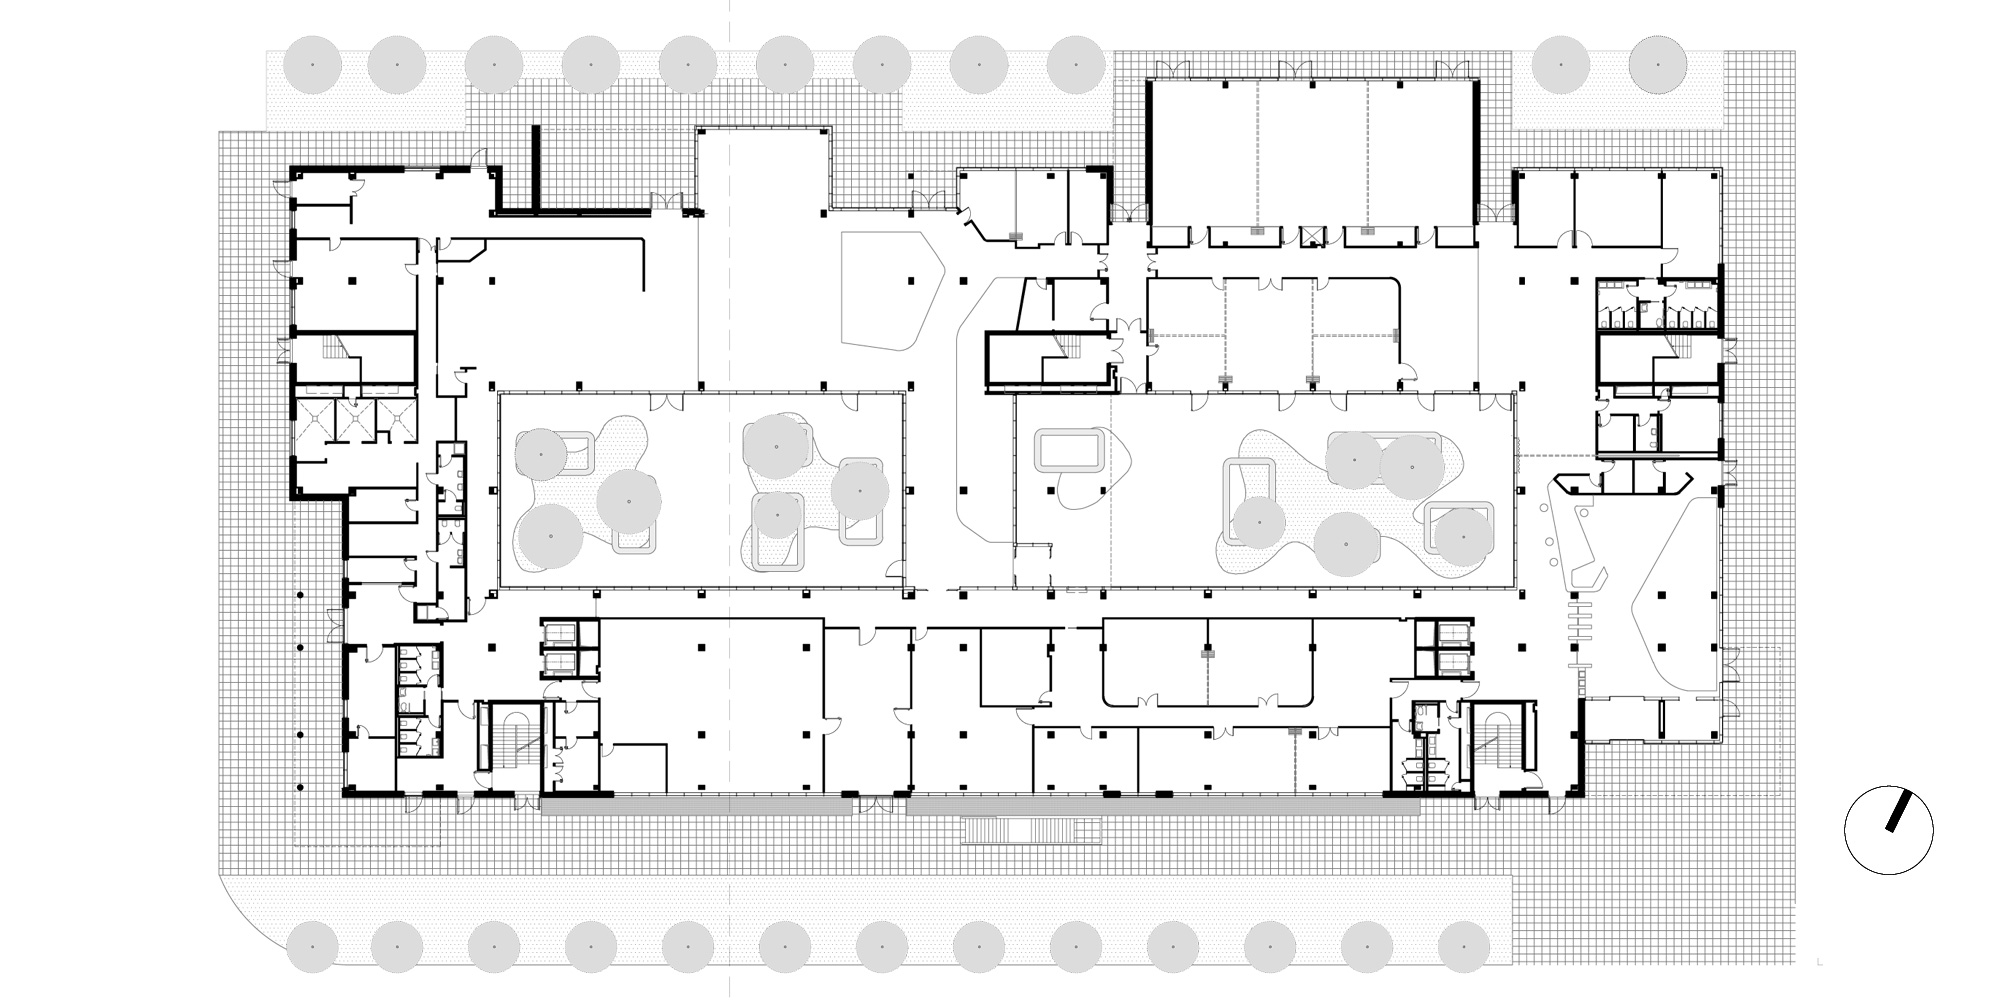 Ground floor plan © Barreca & La Varra